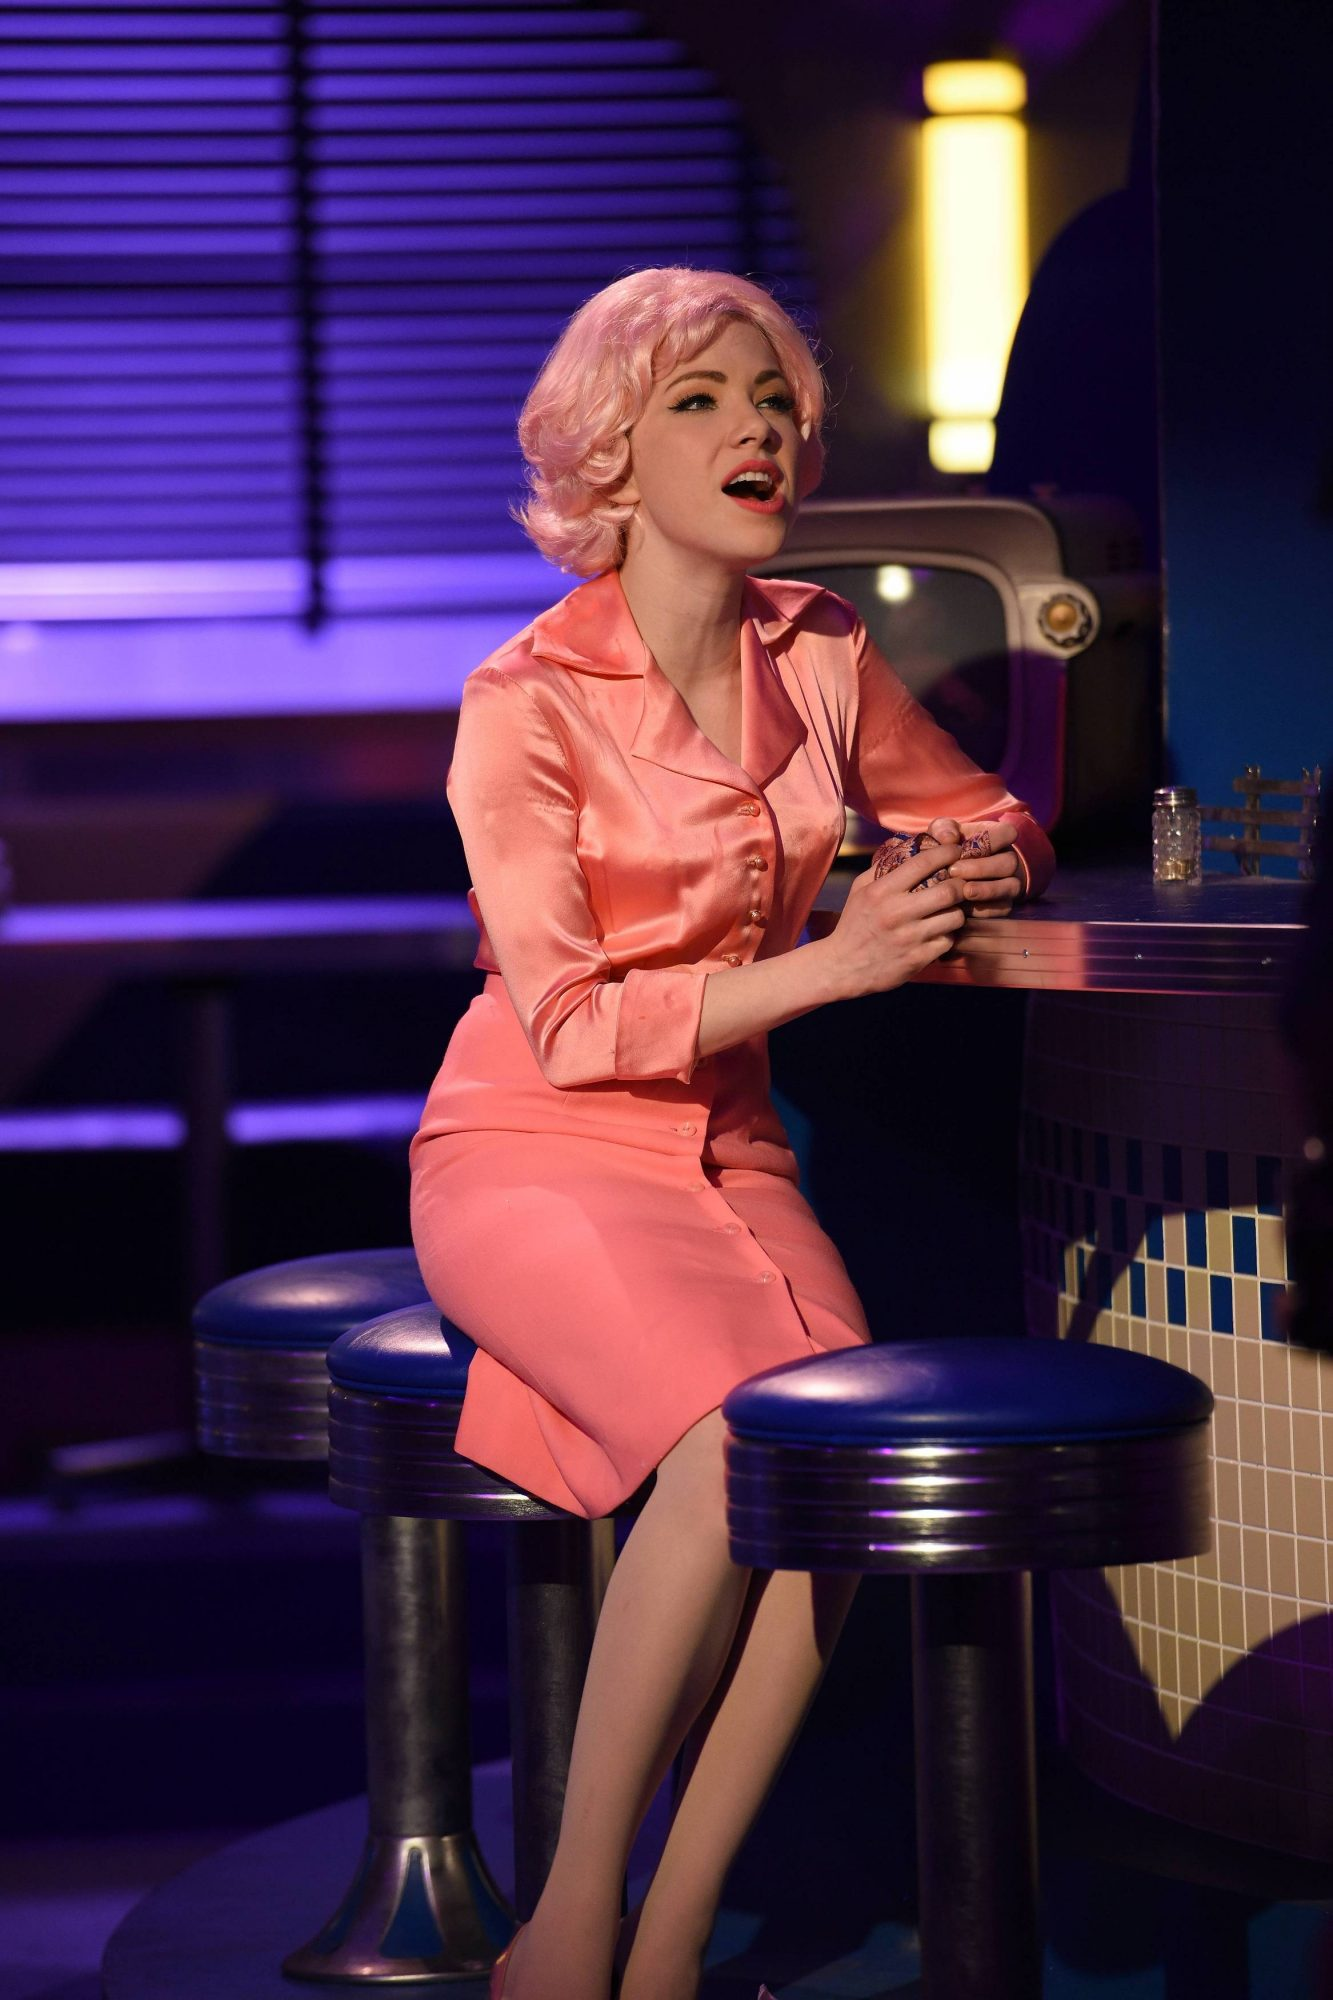 carly rae jepsen grease live frenchie pink hair